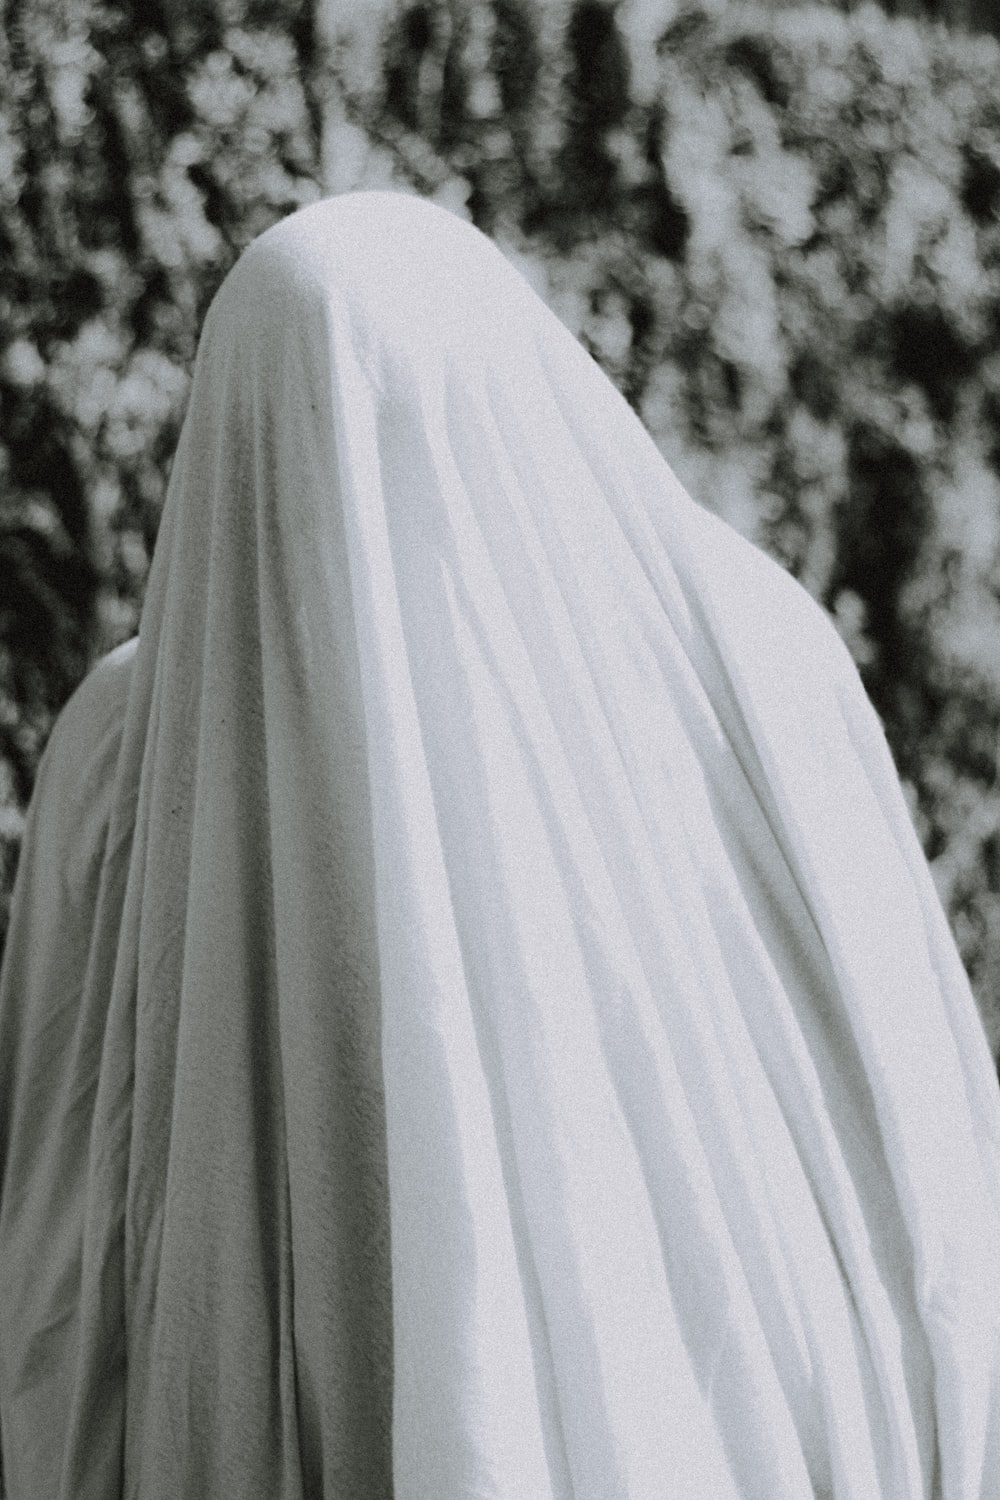 person in white hijab standing near trees